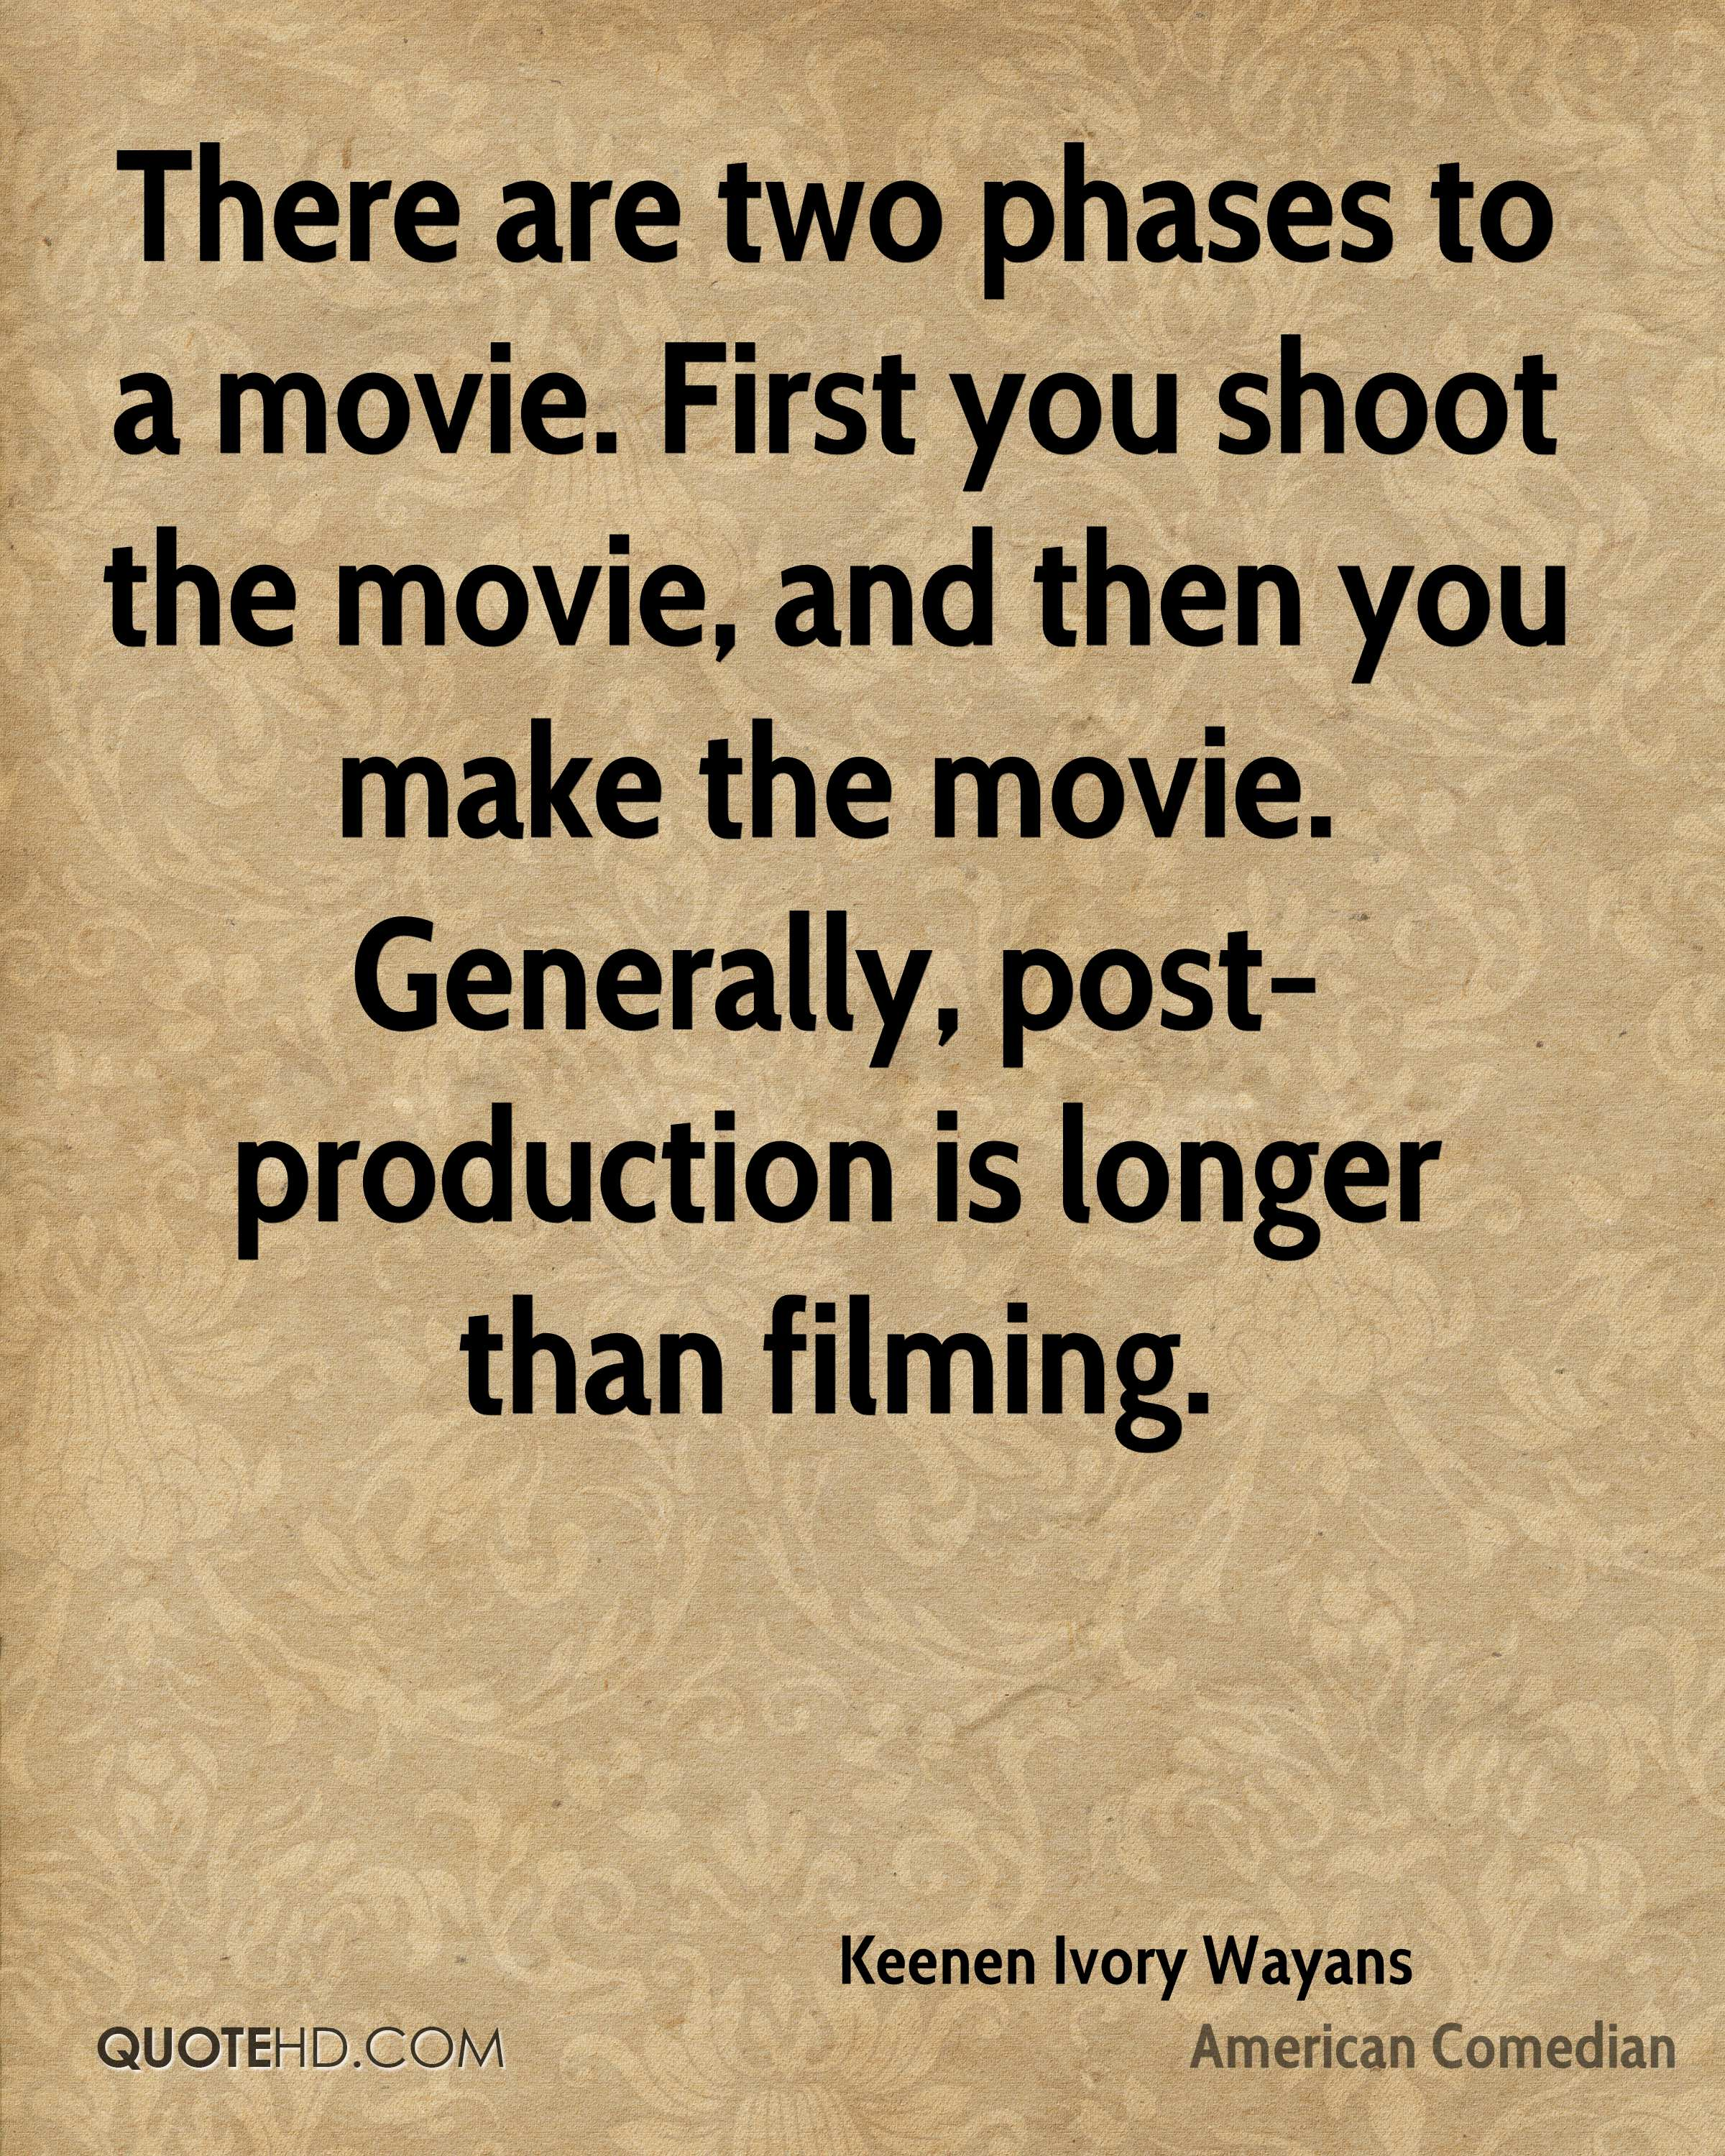 There are two phases to a movie. First you shoot the movie, and then you make the movie. Generally, post-production is longer than filming.